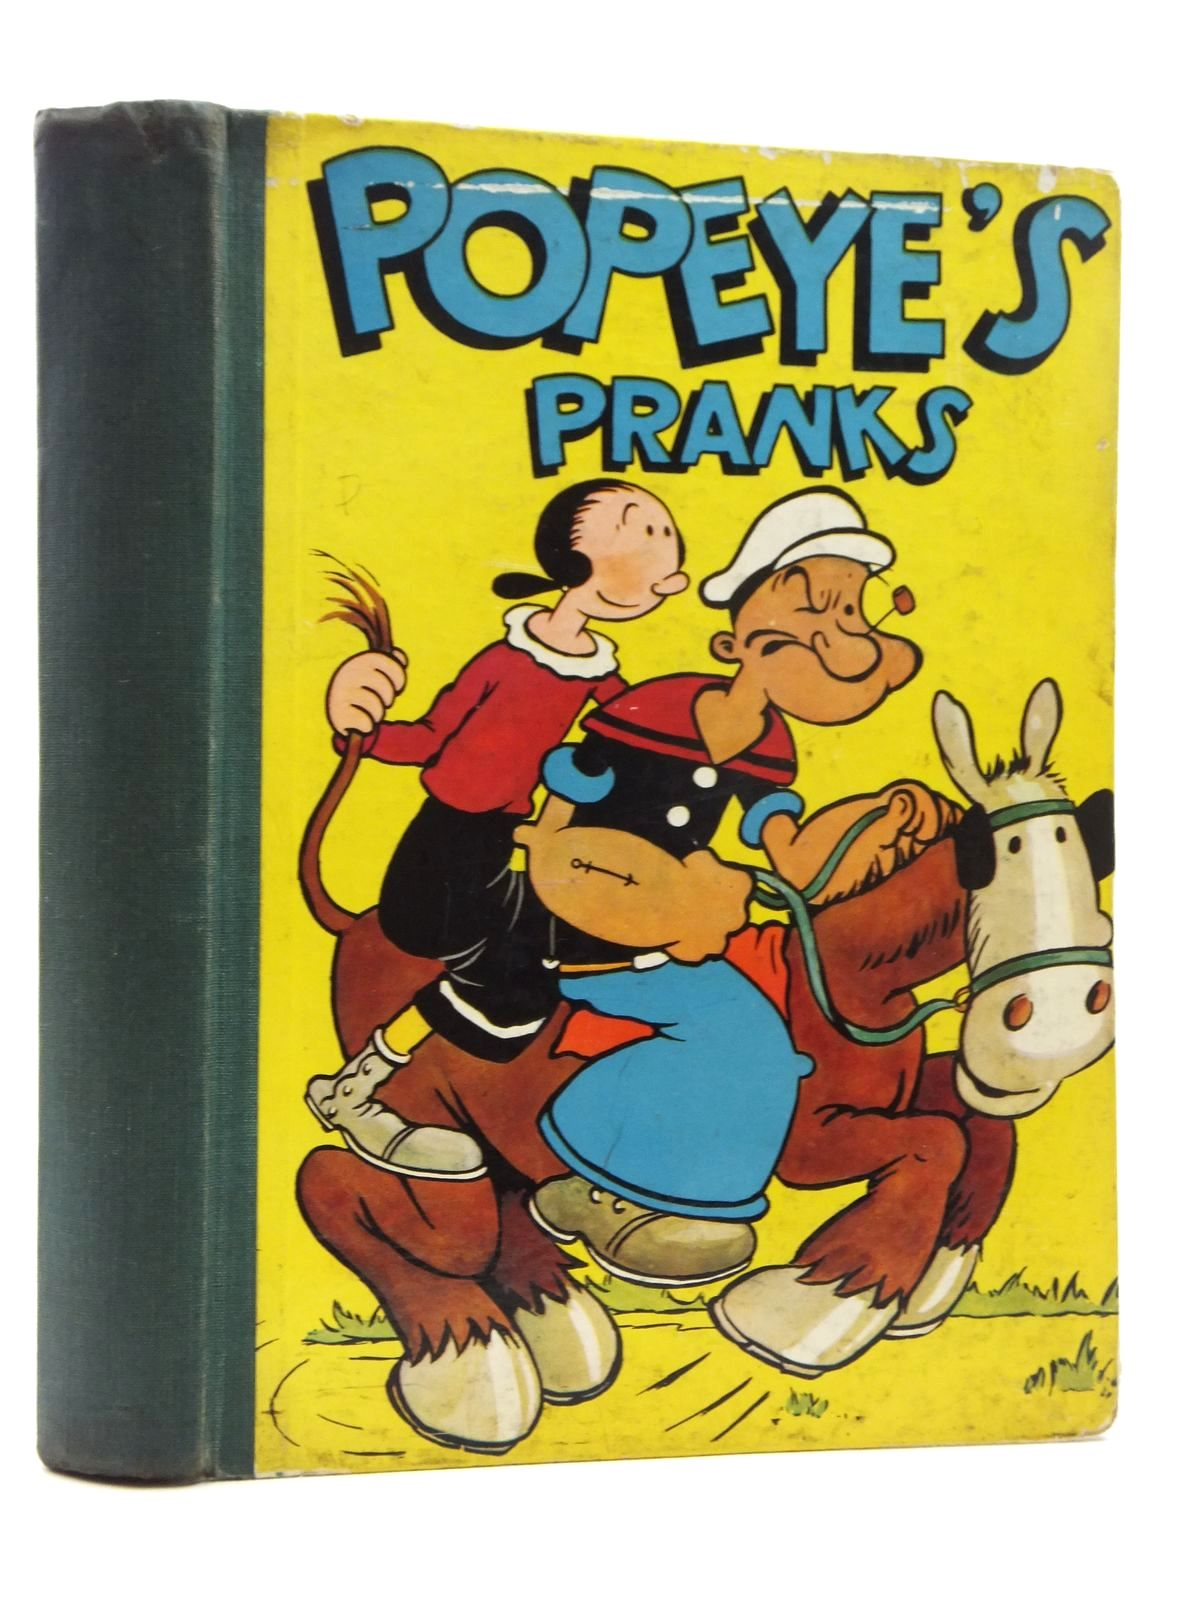 Photo of POPEYE'S PRANKS published by Birn Brothers Ltd. (STOCK CODE: 2123798)  for sale by Stella & Rose's Books